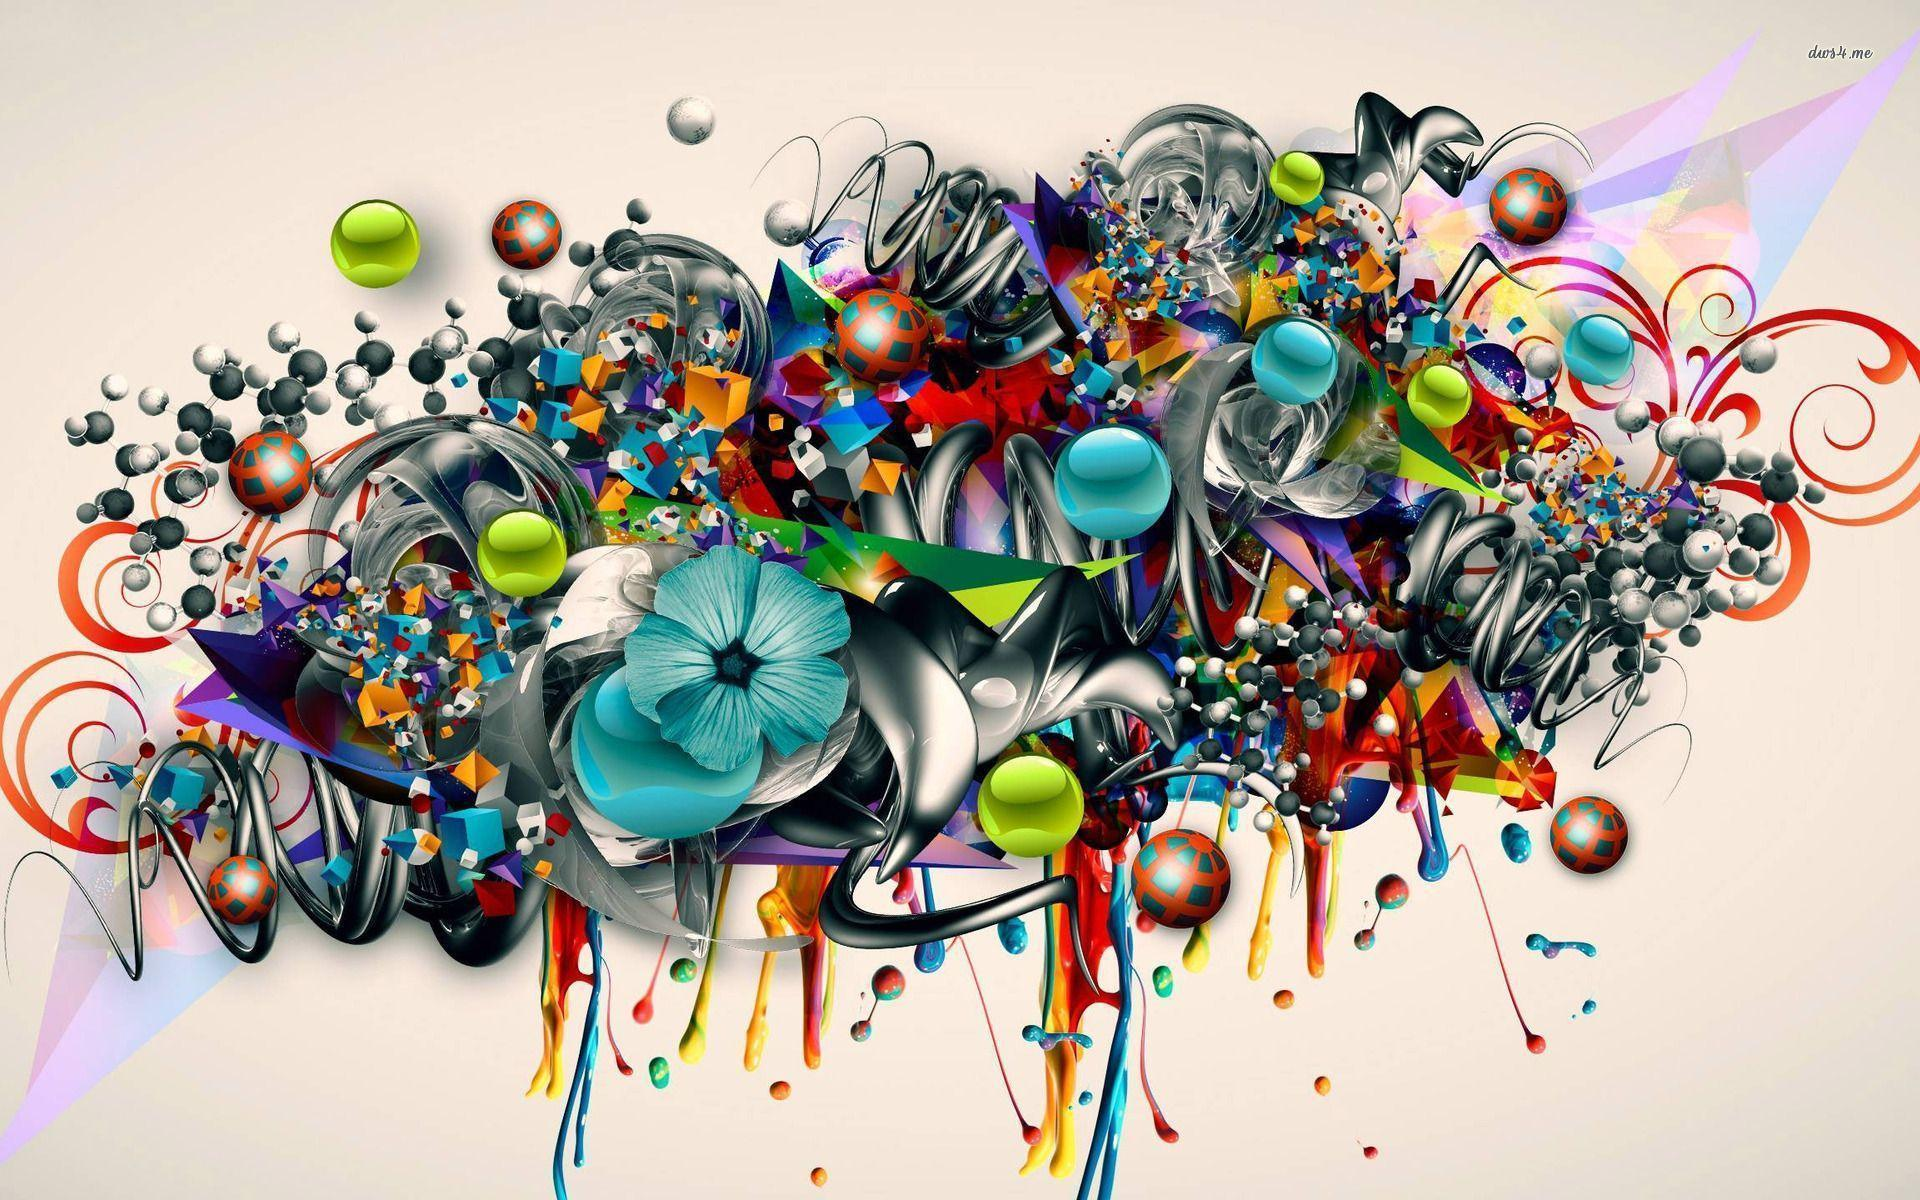 Graffiti Design Art HD Wallpaper for PC | Vignettes/Art ...